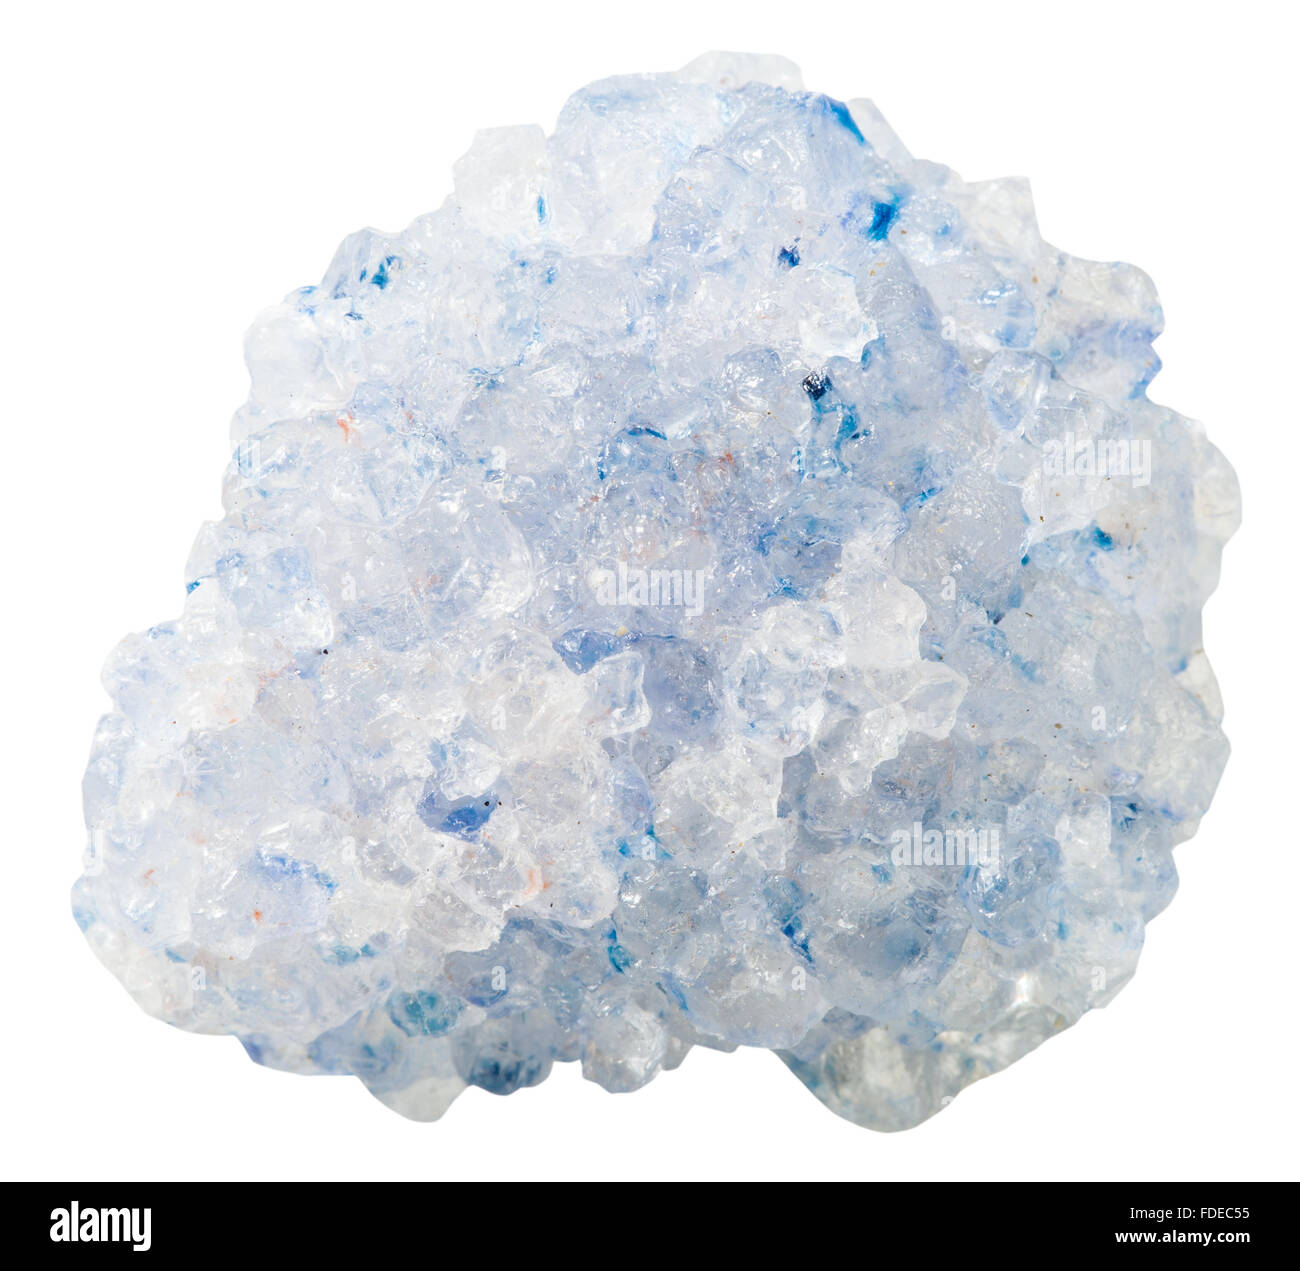 macro shooting of collection natural rock - blue crystalline Celestine (celestite) mineral stone isolated on white - Stock Image